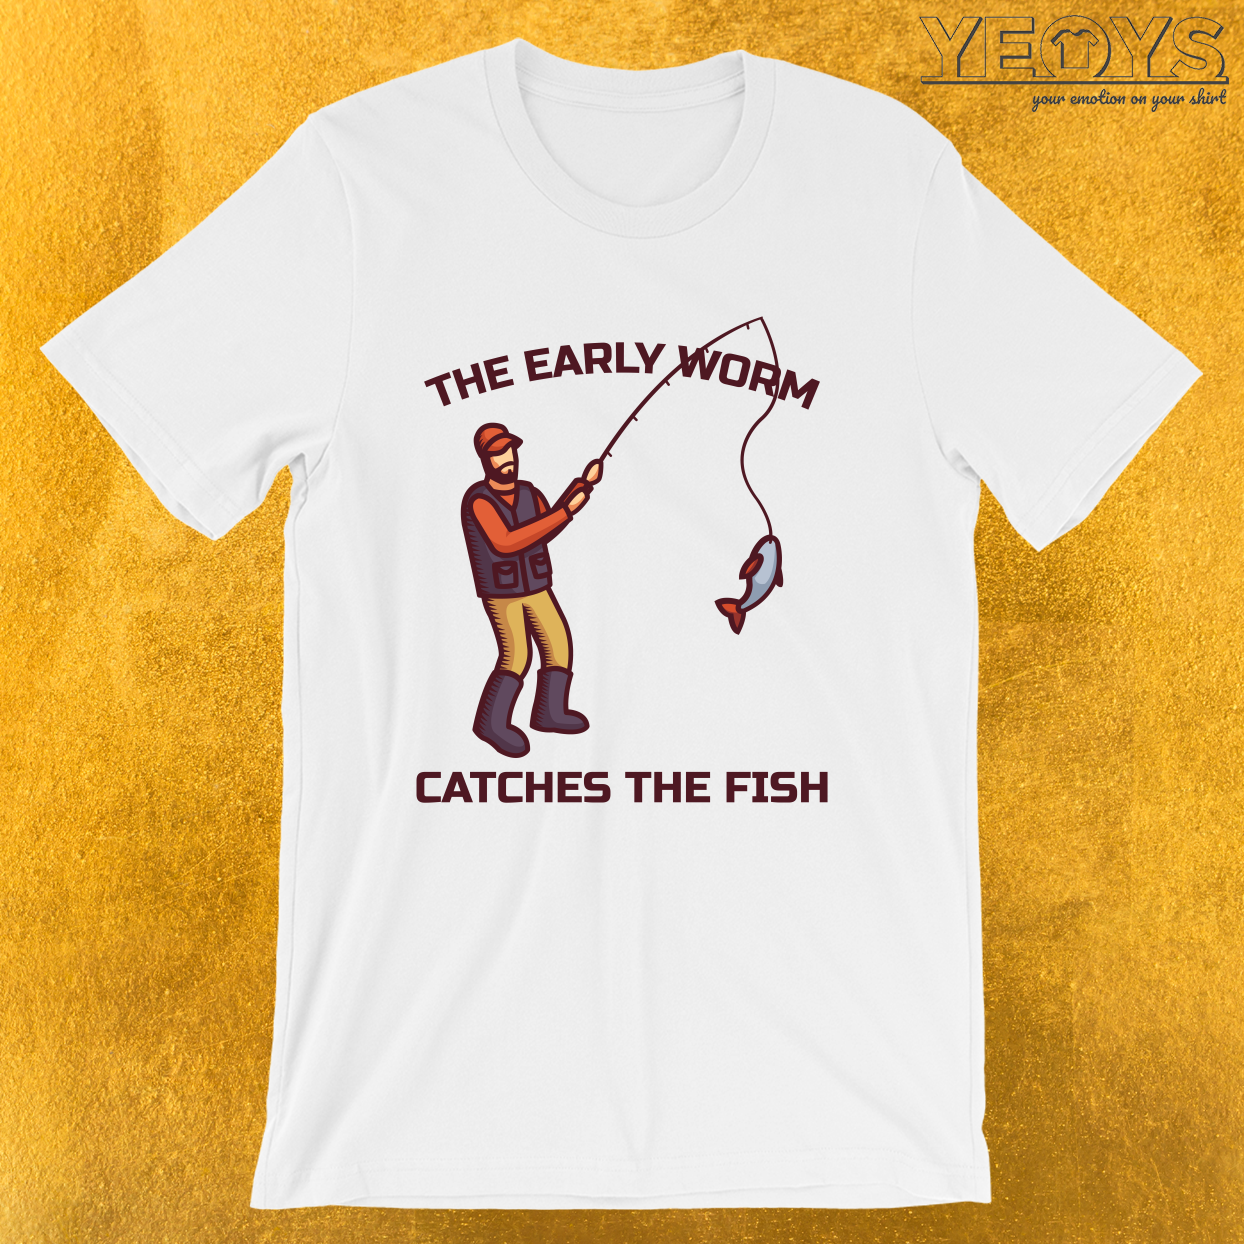 The Early Worm Catches The Fish – Funny Fishing Tee